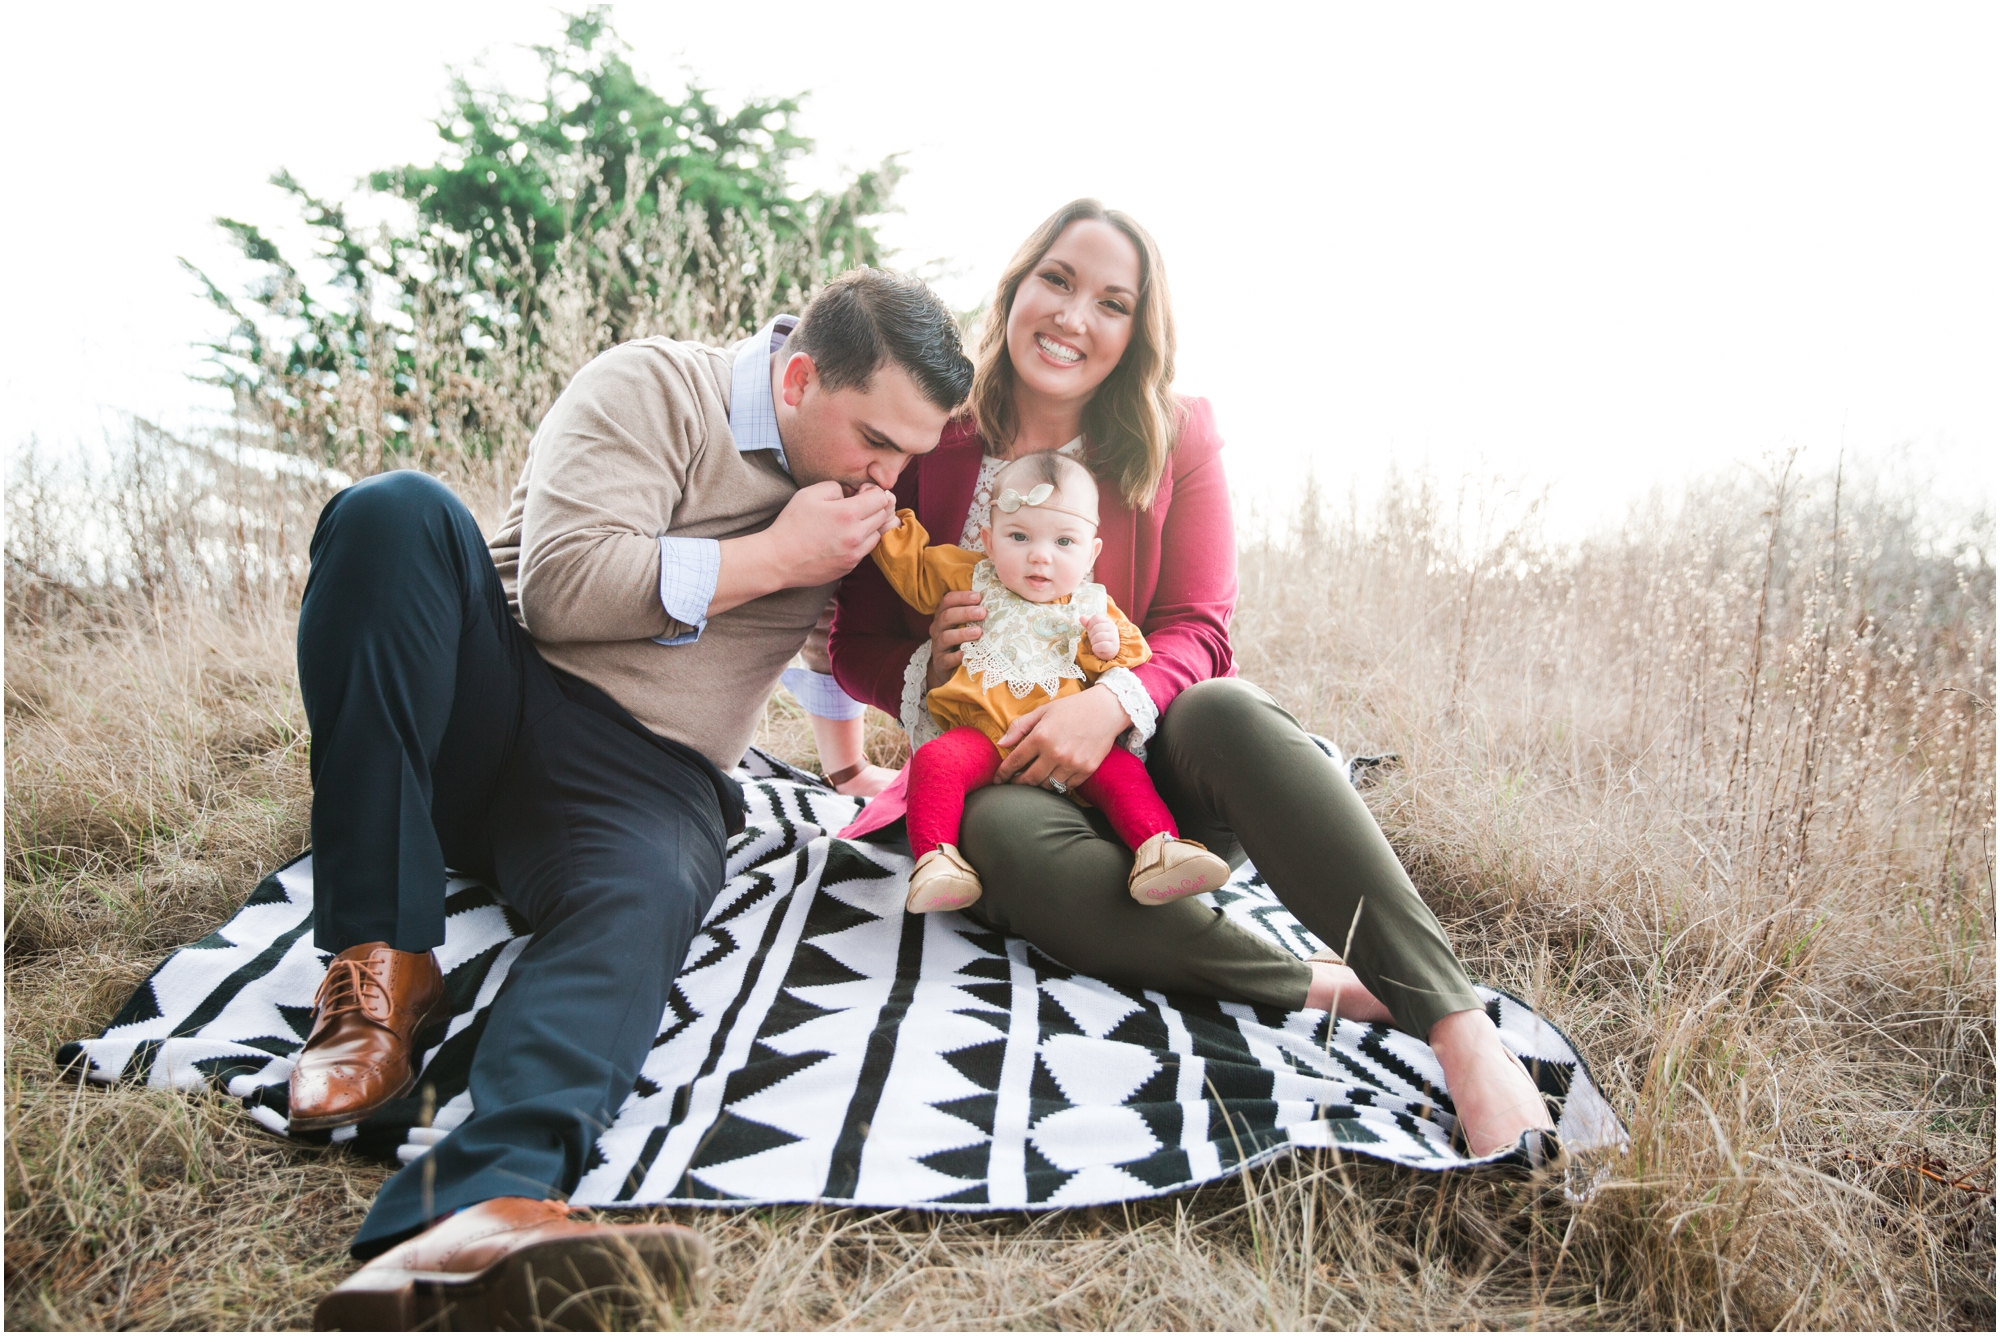 Half Moon Bay family photos by Briana Calderon Photography_0587.jpg